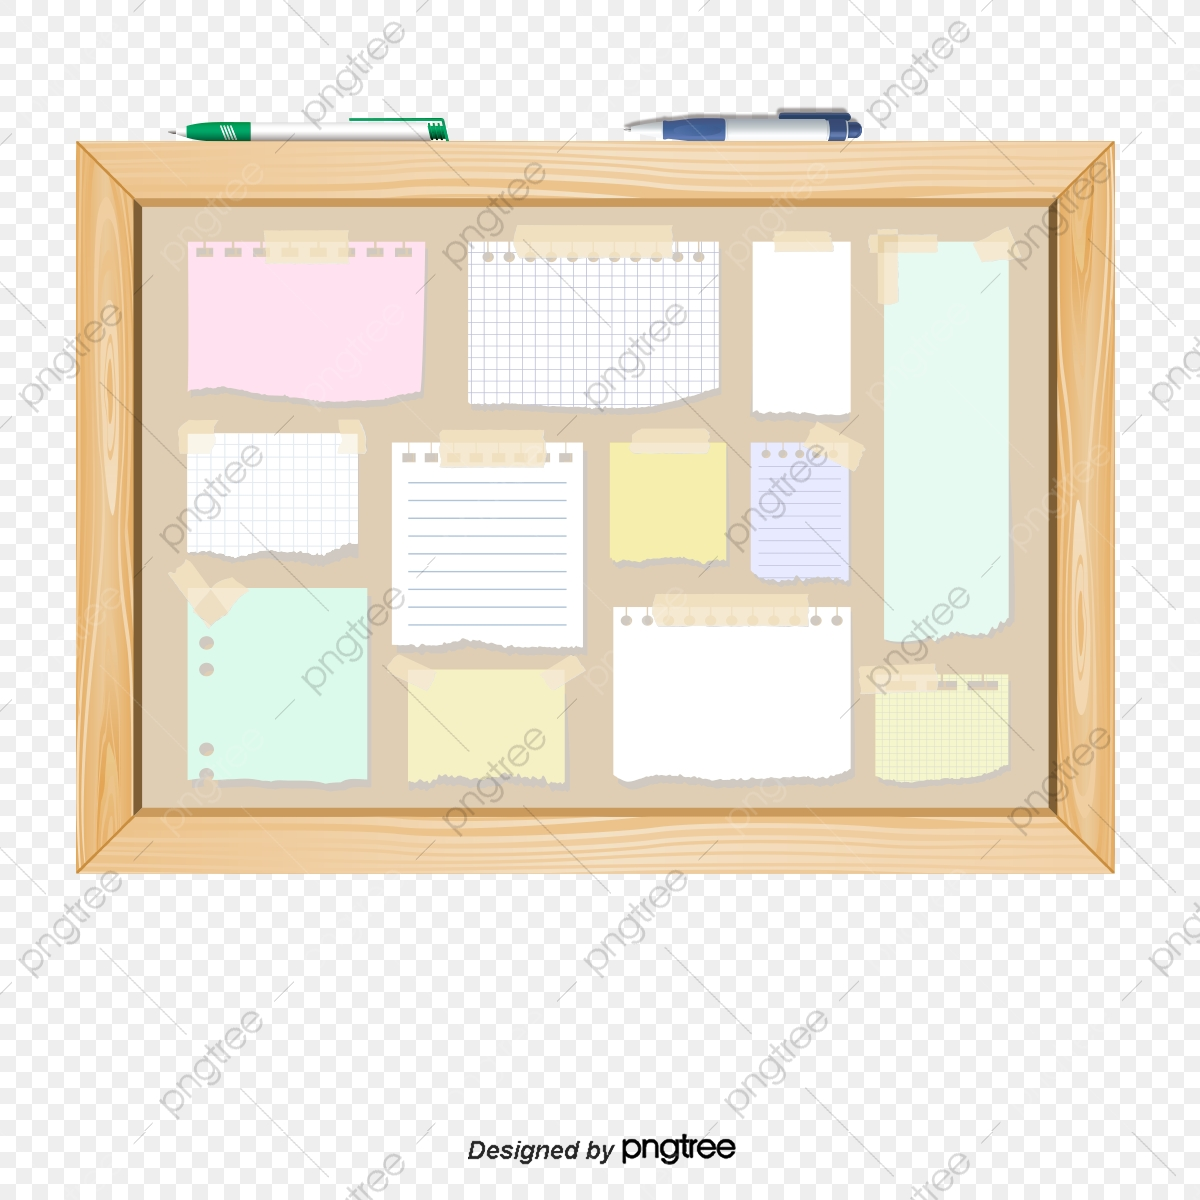 hight resolution of commercial use resource upgrade to premium plan and get license authorization upgradenow wooden bulletin board